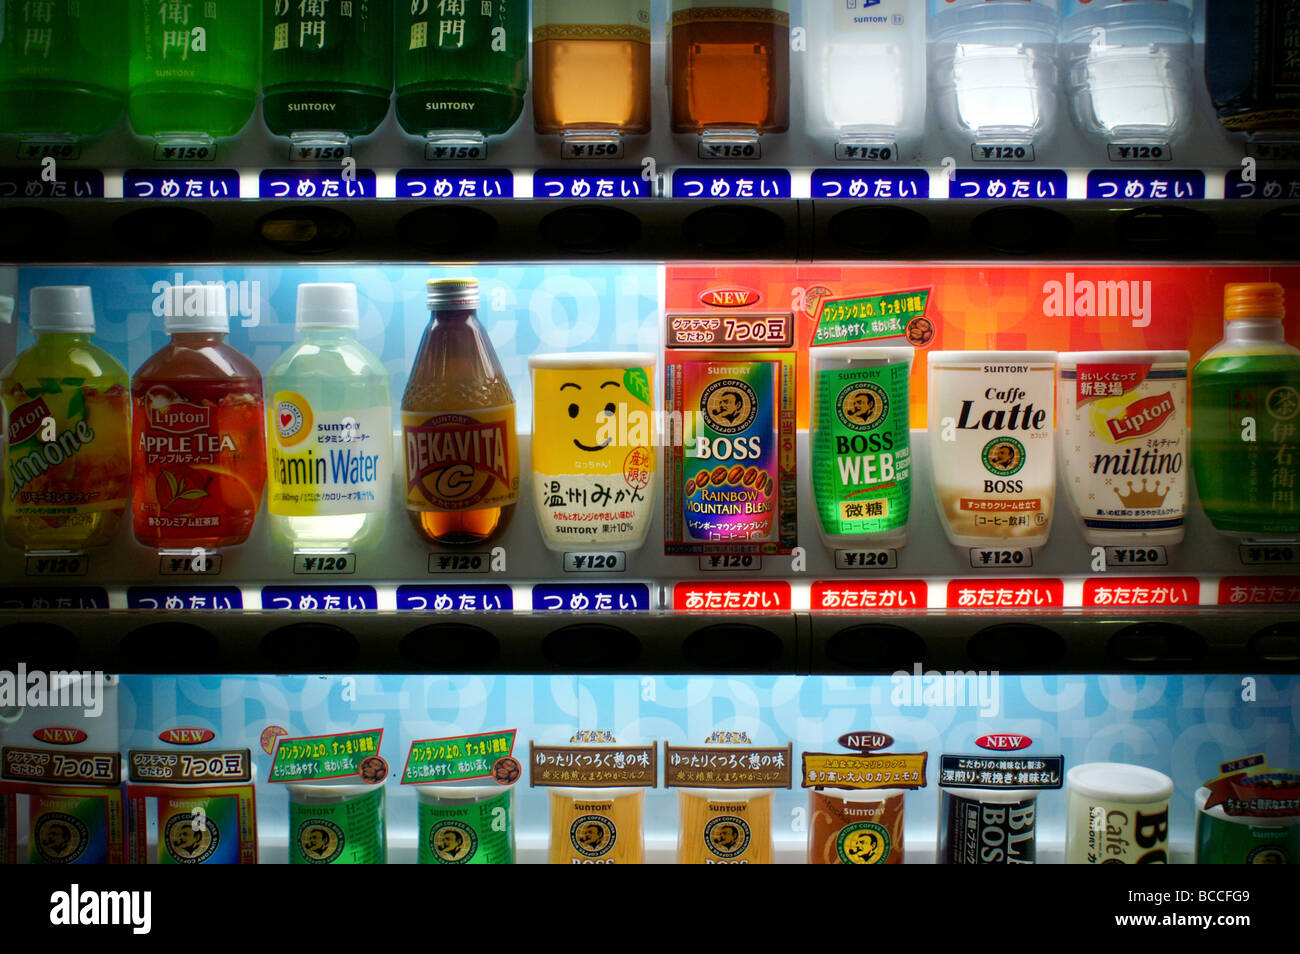 Vending machine selling drinks in Tokyo Japan - Stock Image